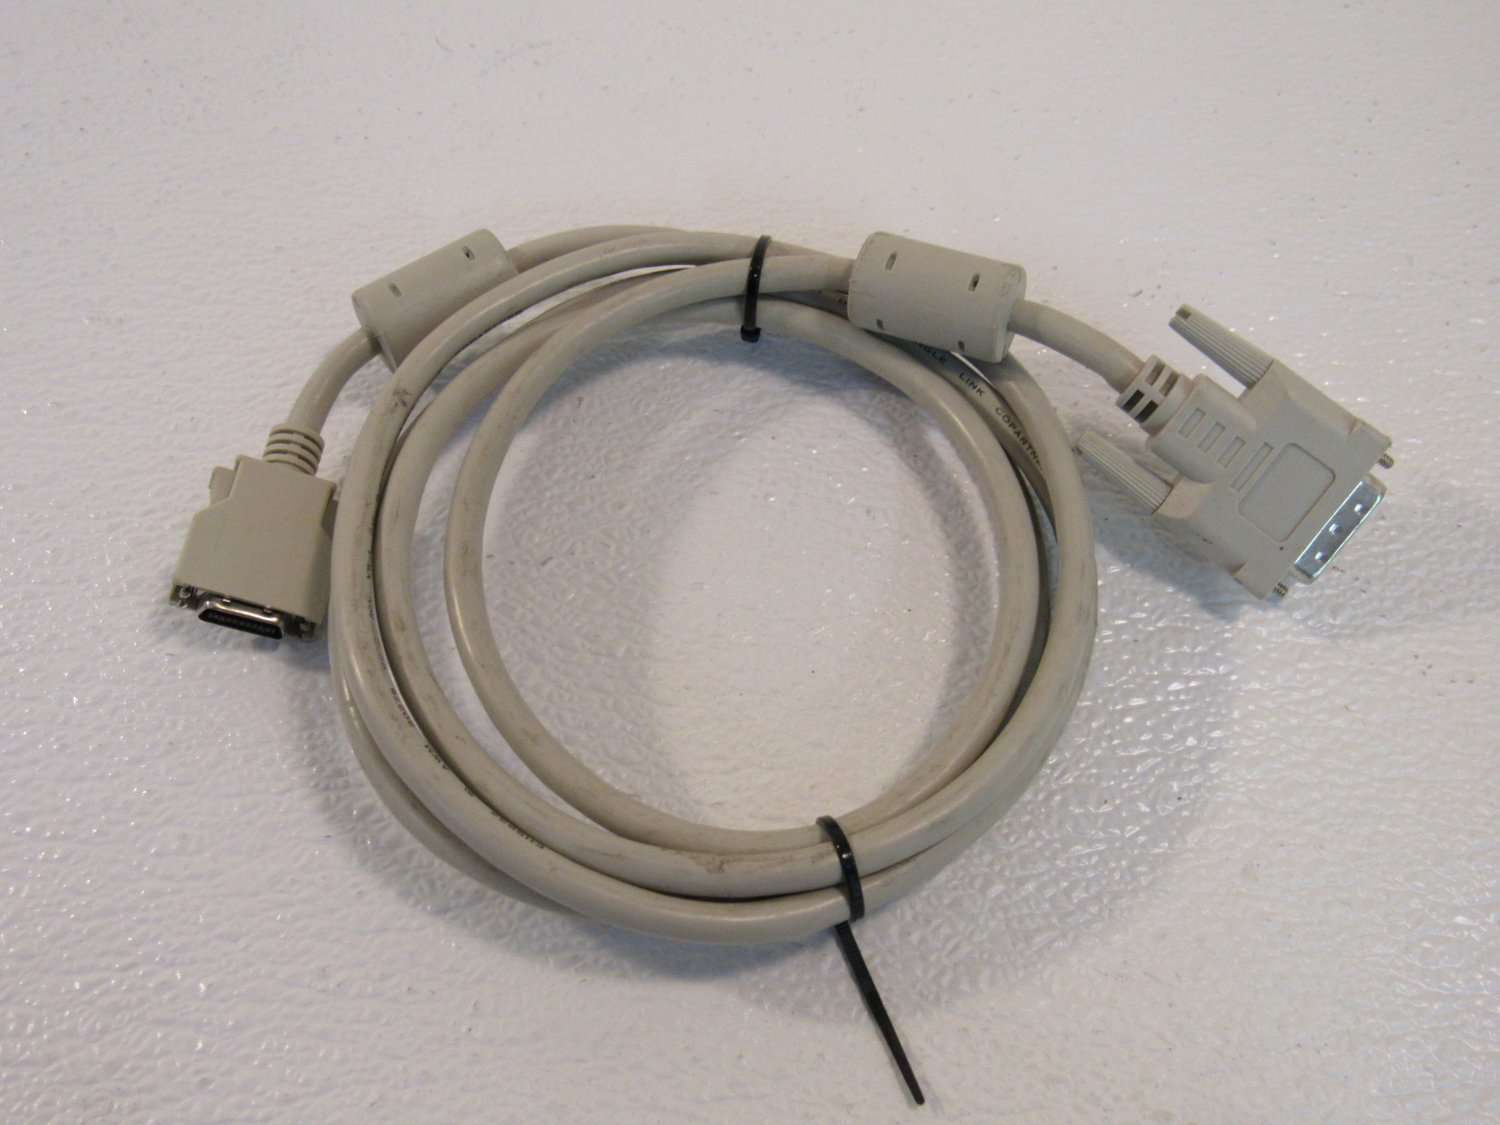 Unbranded/Generic 6 Foot DVI Monitor Cable For Gateway Gray